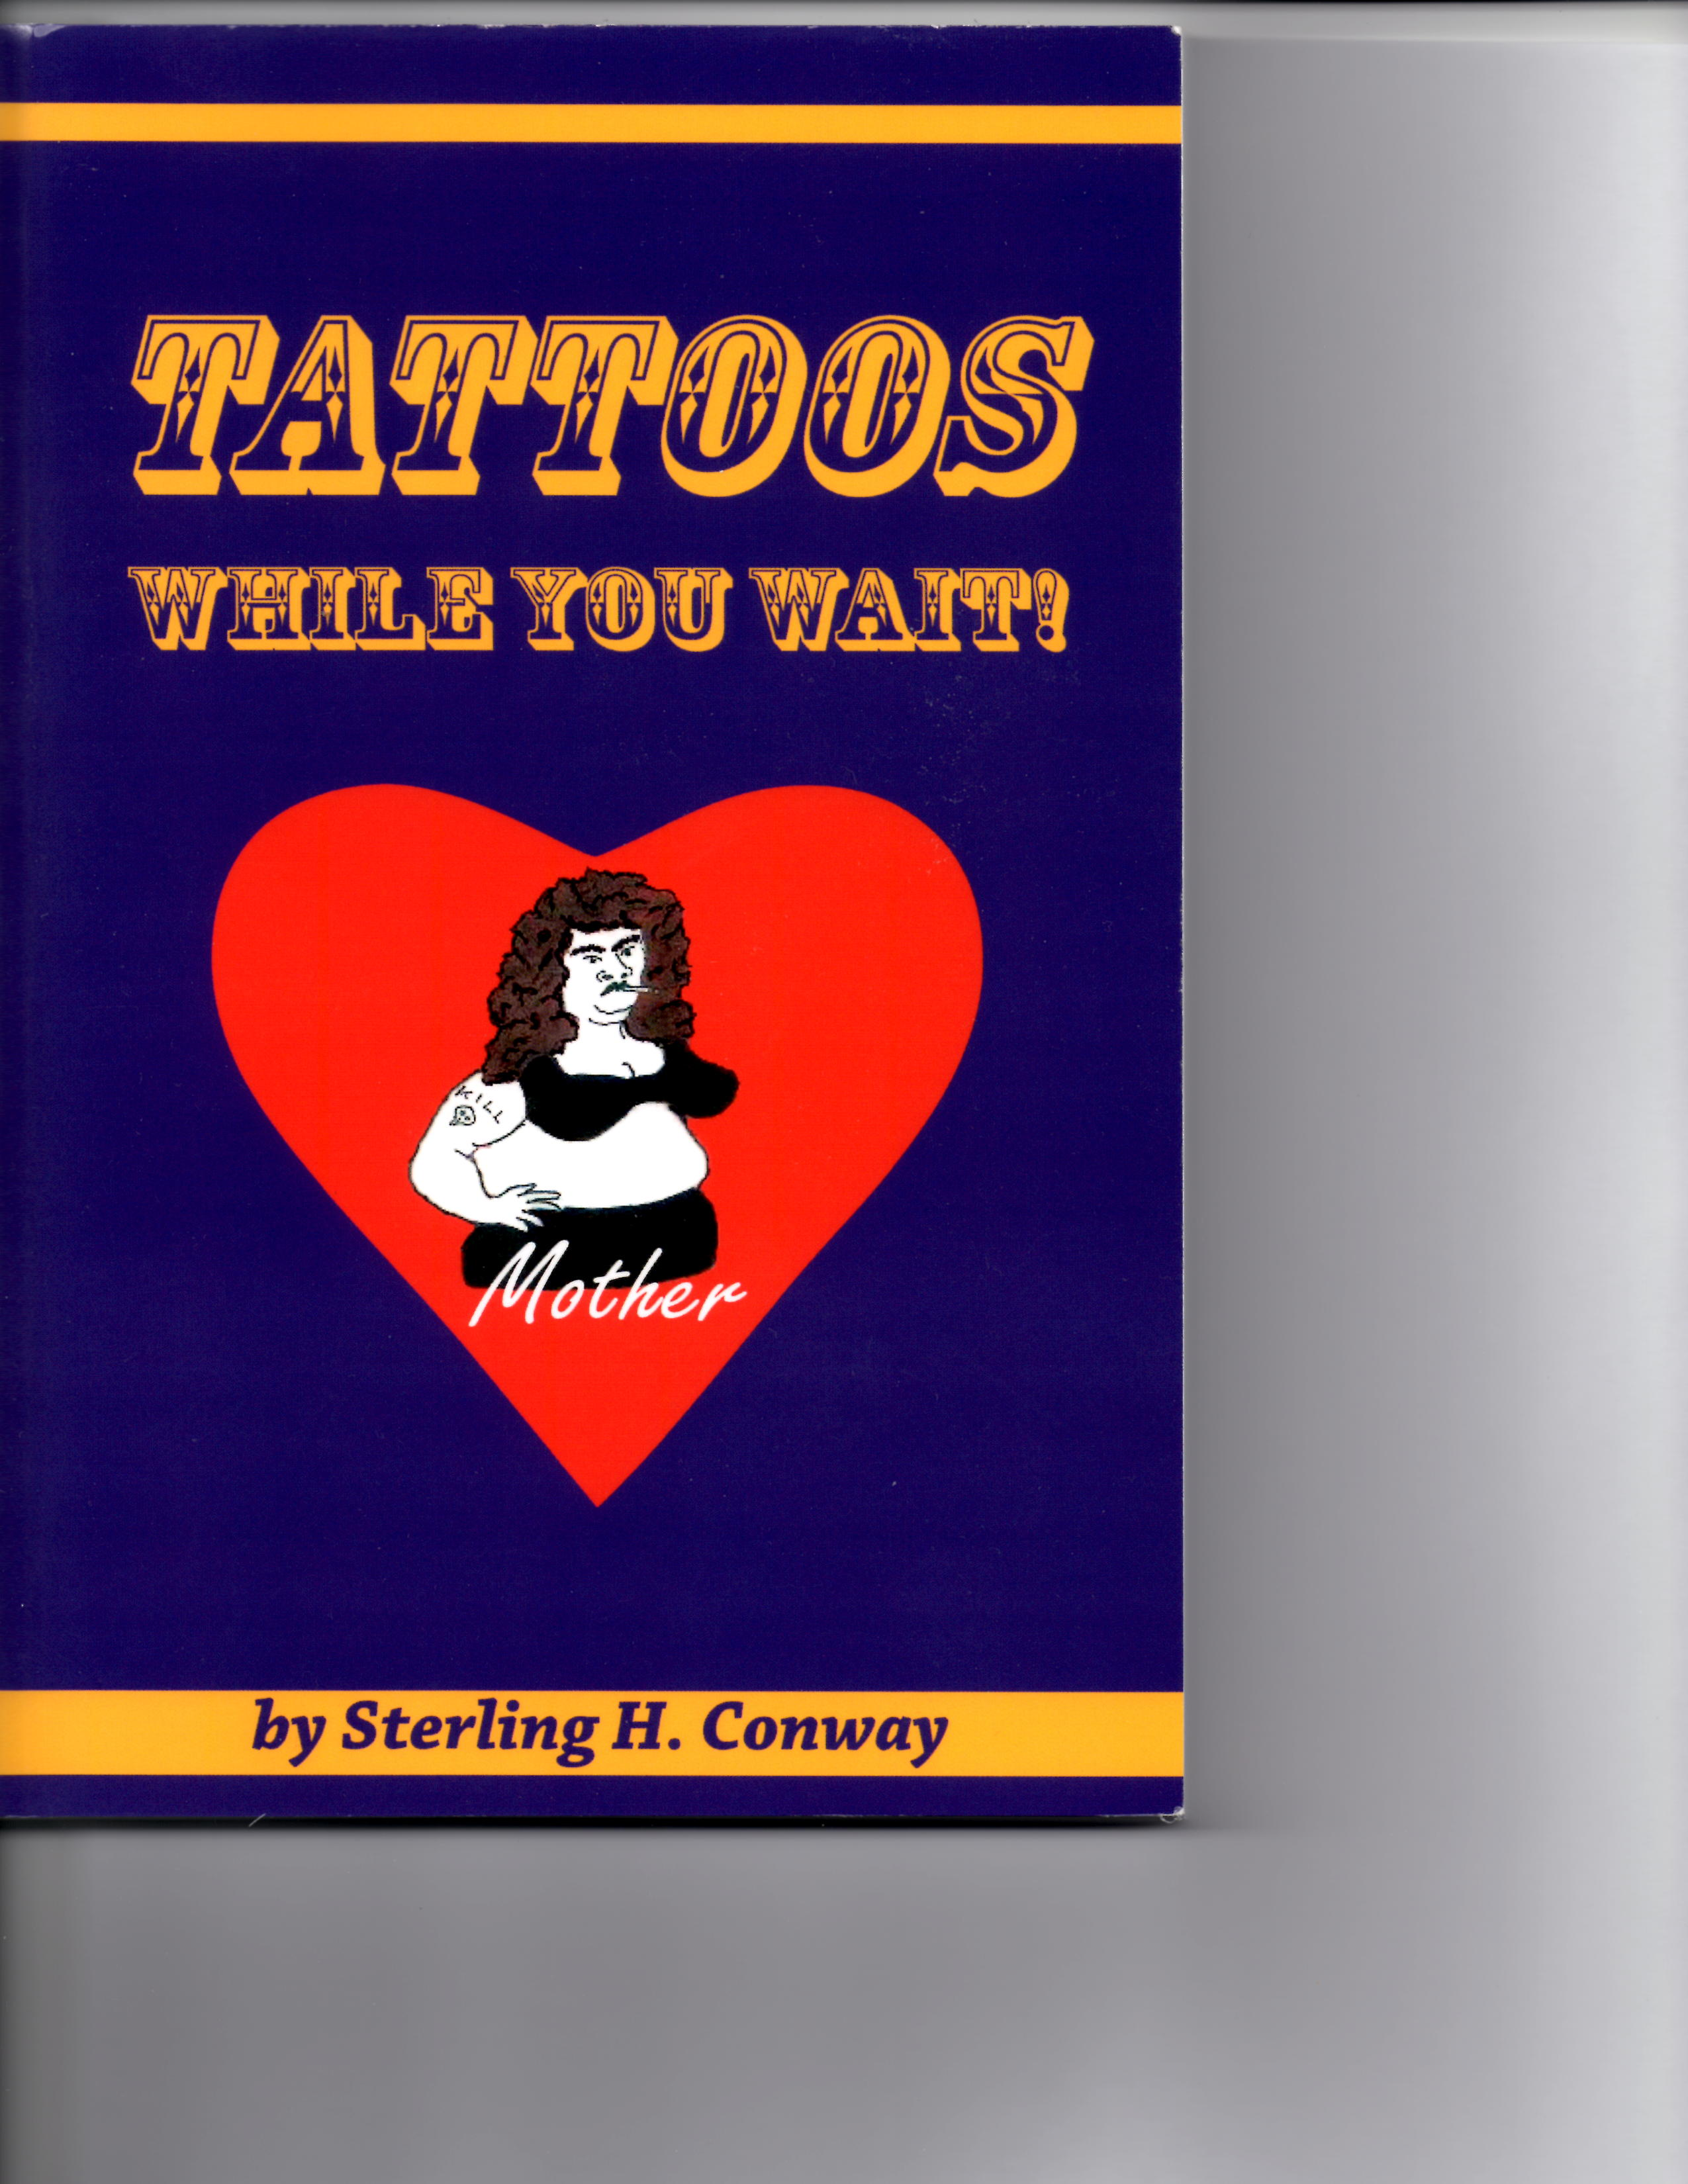 Tattoos While You Wait!